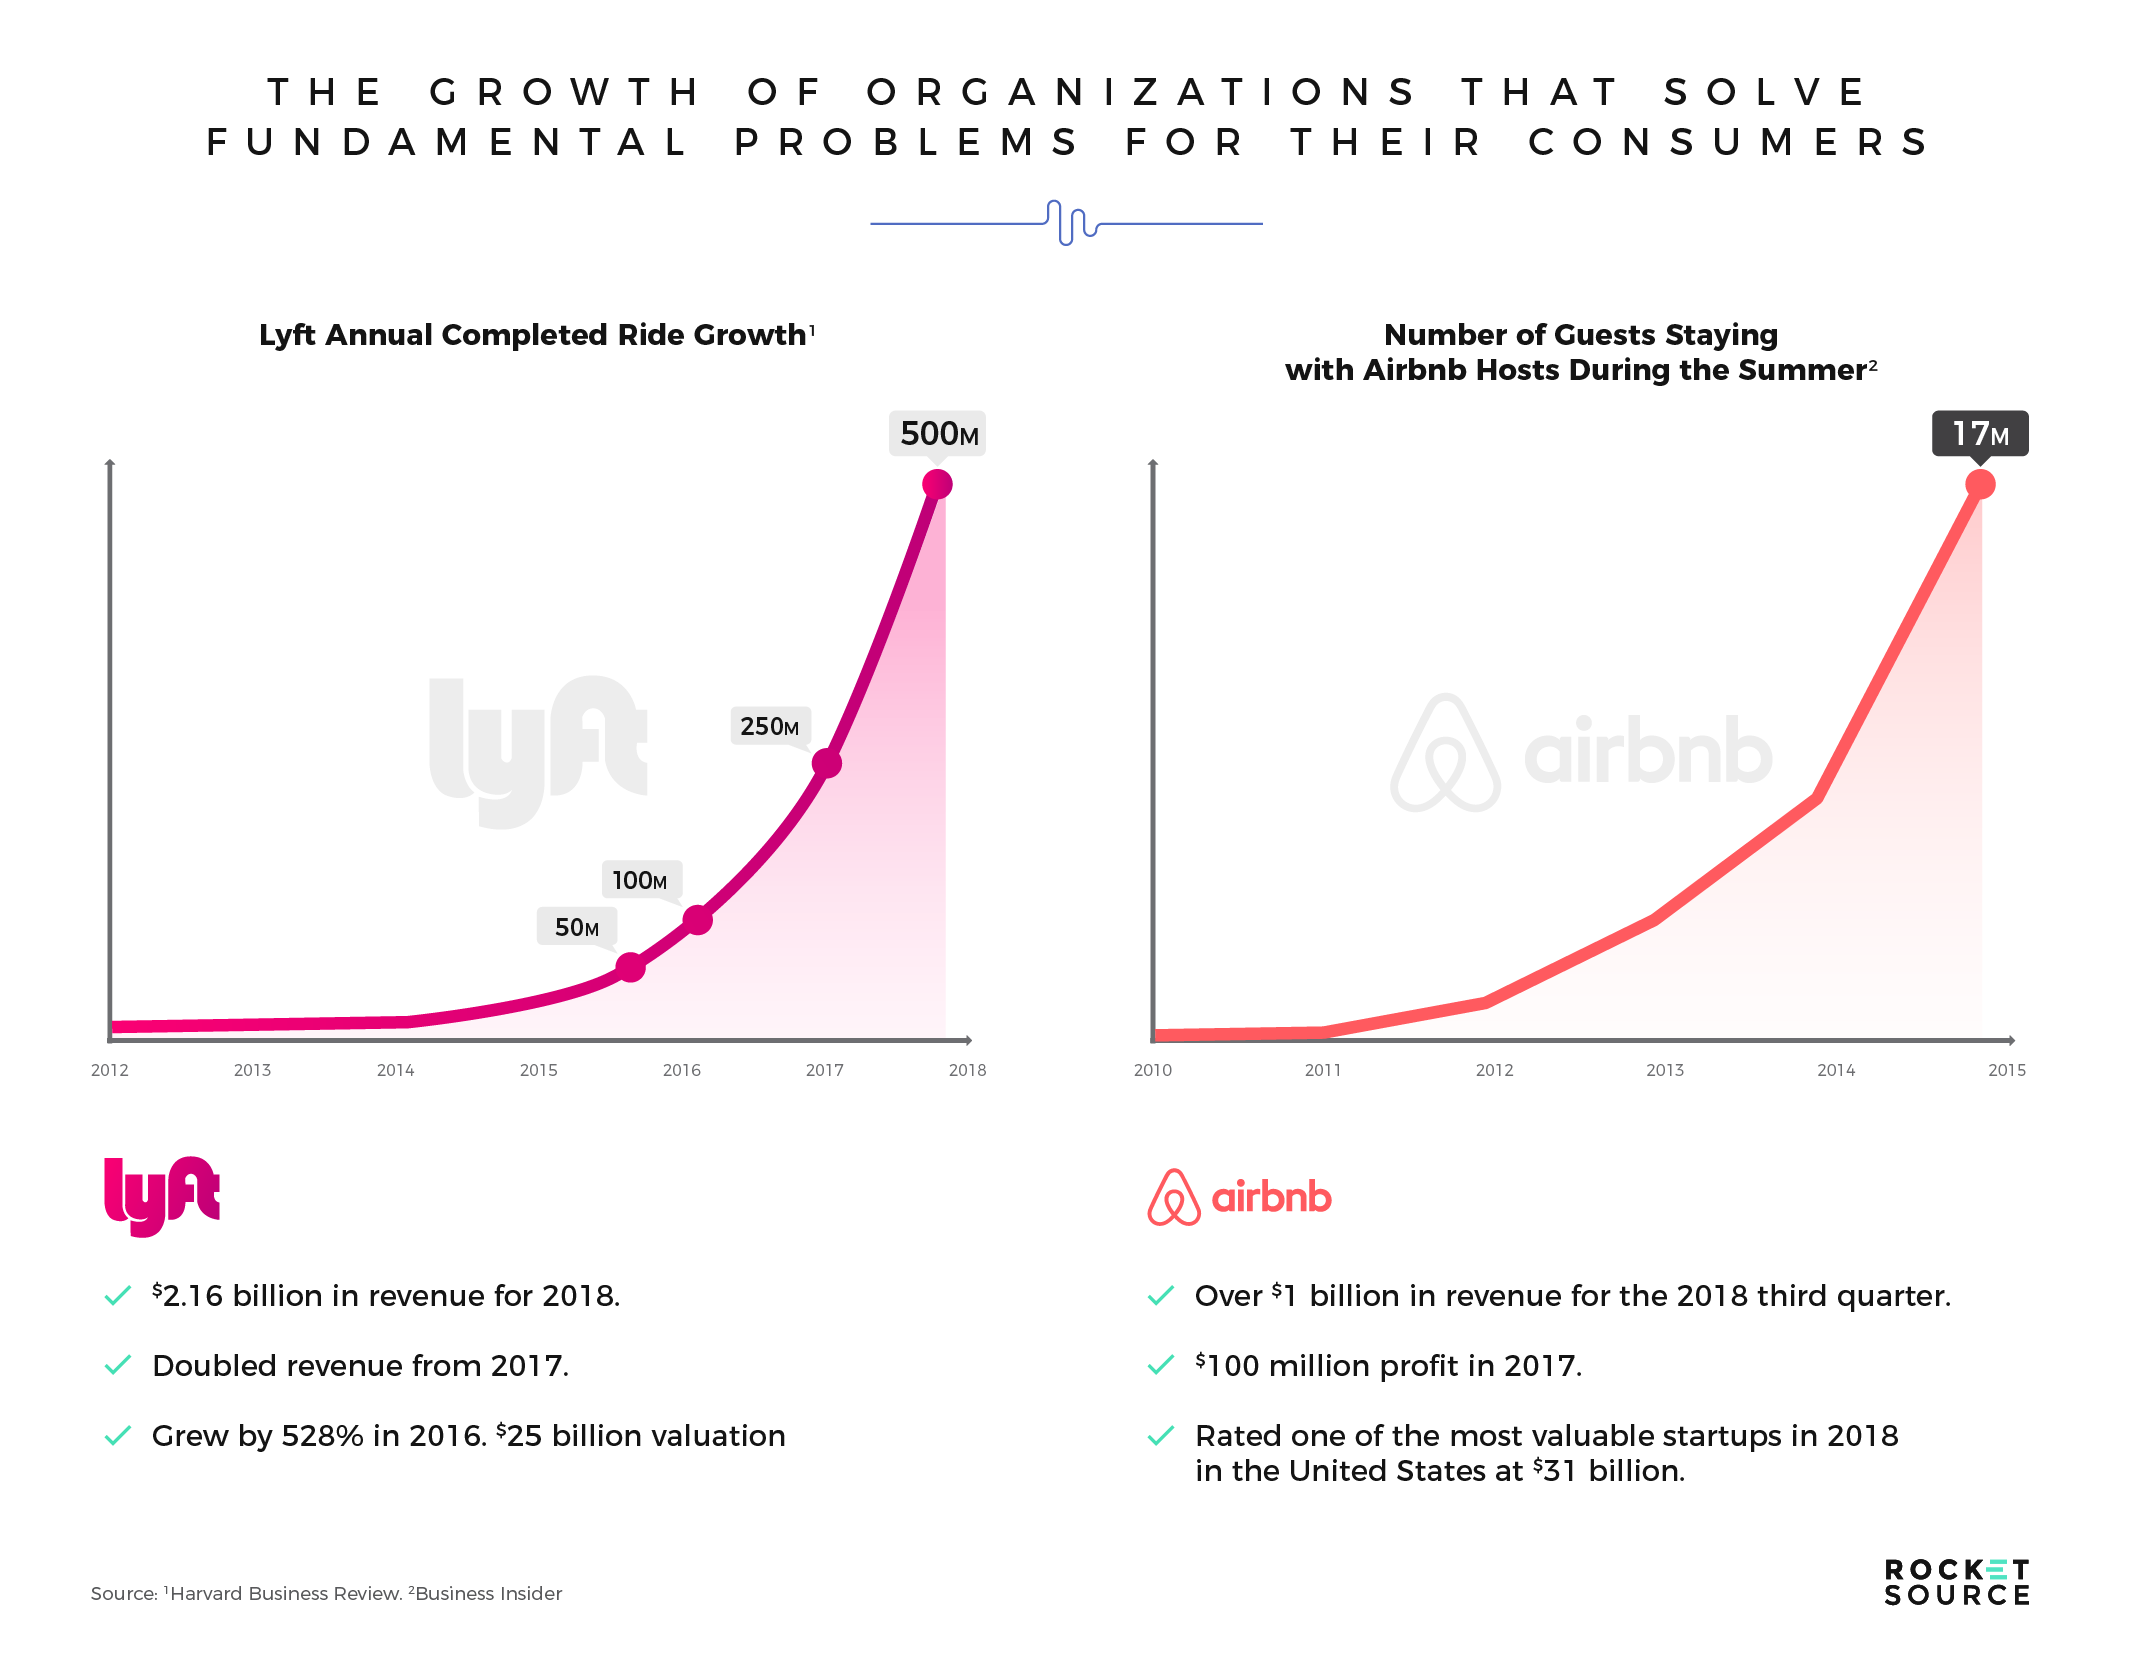 growth of organizations via digital transformation